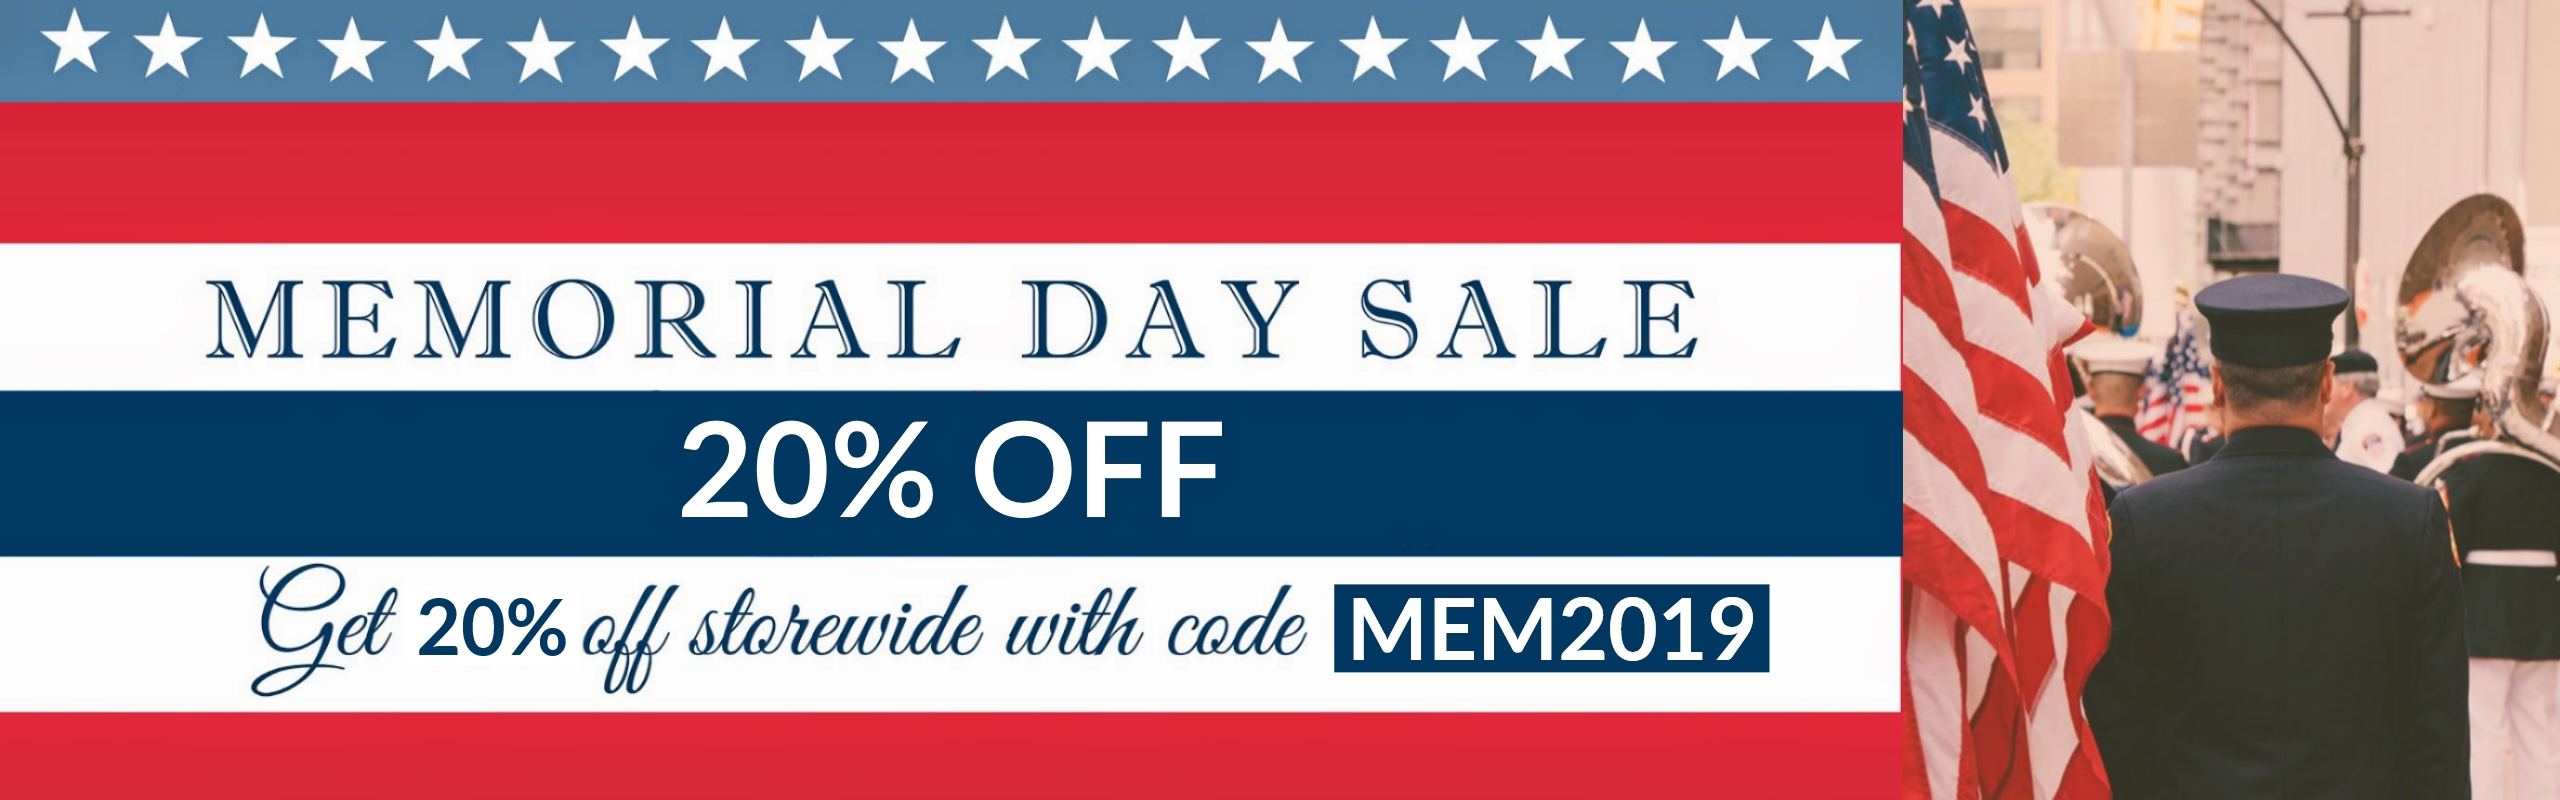 Memorial Day Sale: Limited Time Discounts